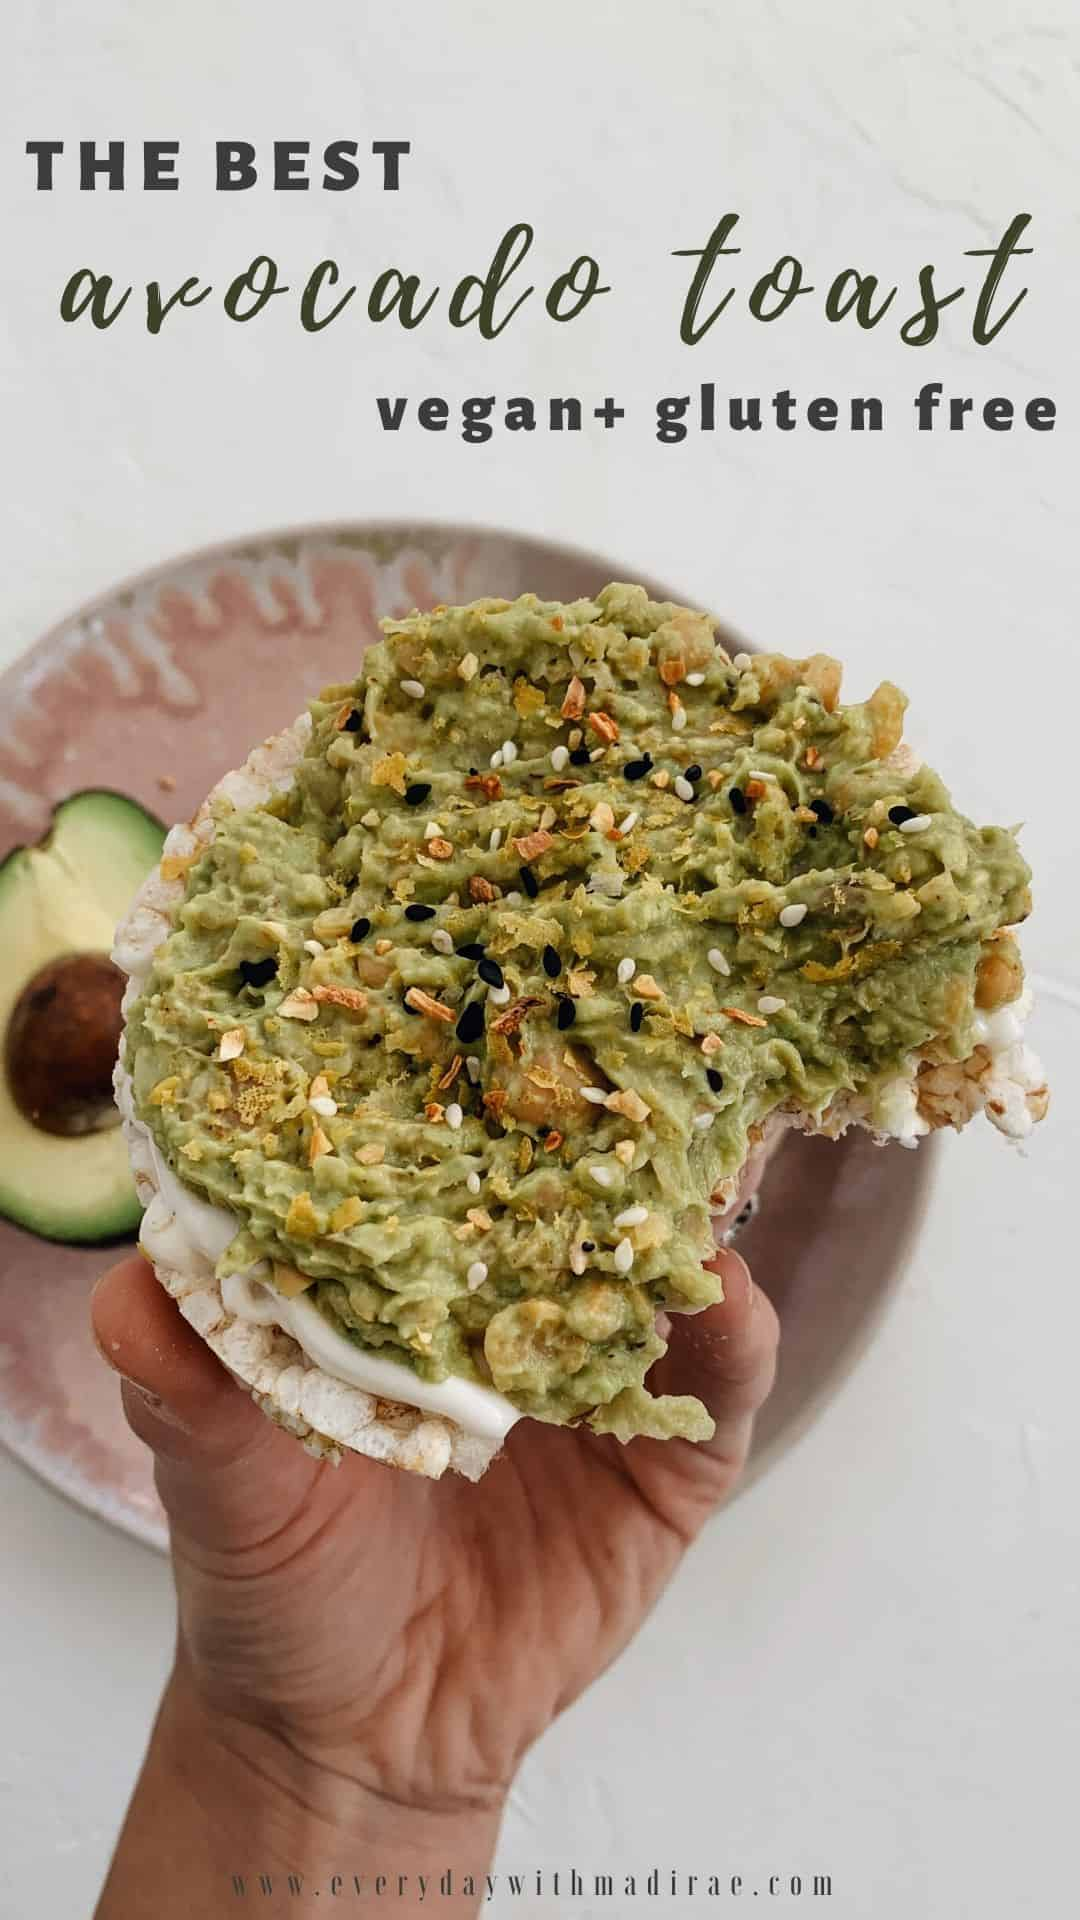 Sharing my go-to avocado toast recipe for the tastiest, nutrient-packed, vegan, & gluten free breakfast, lunch, or healthy snack option!